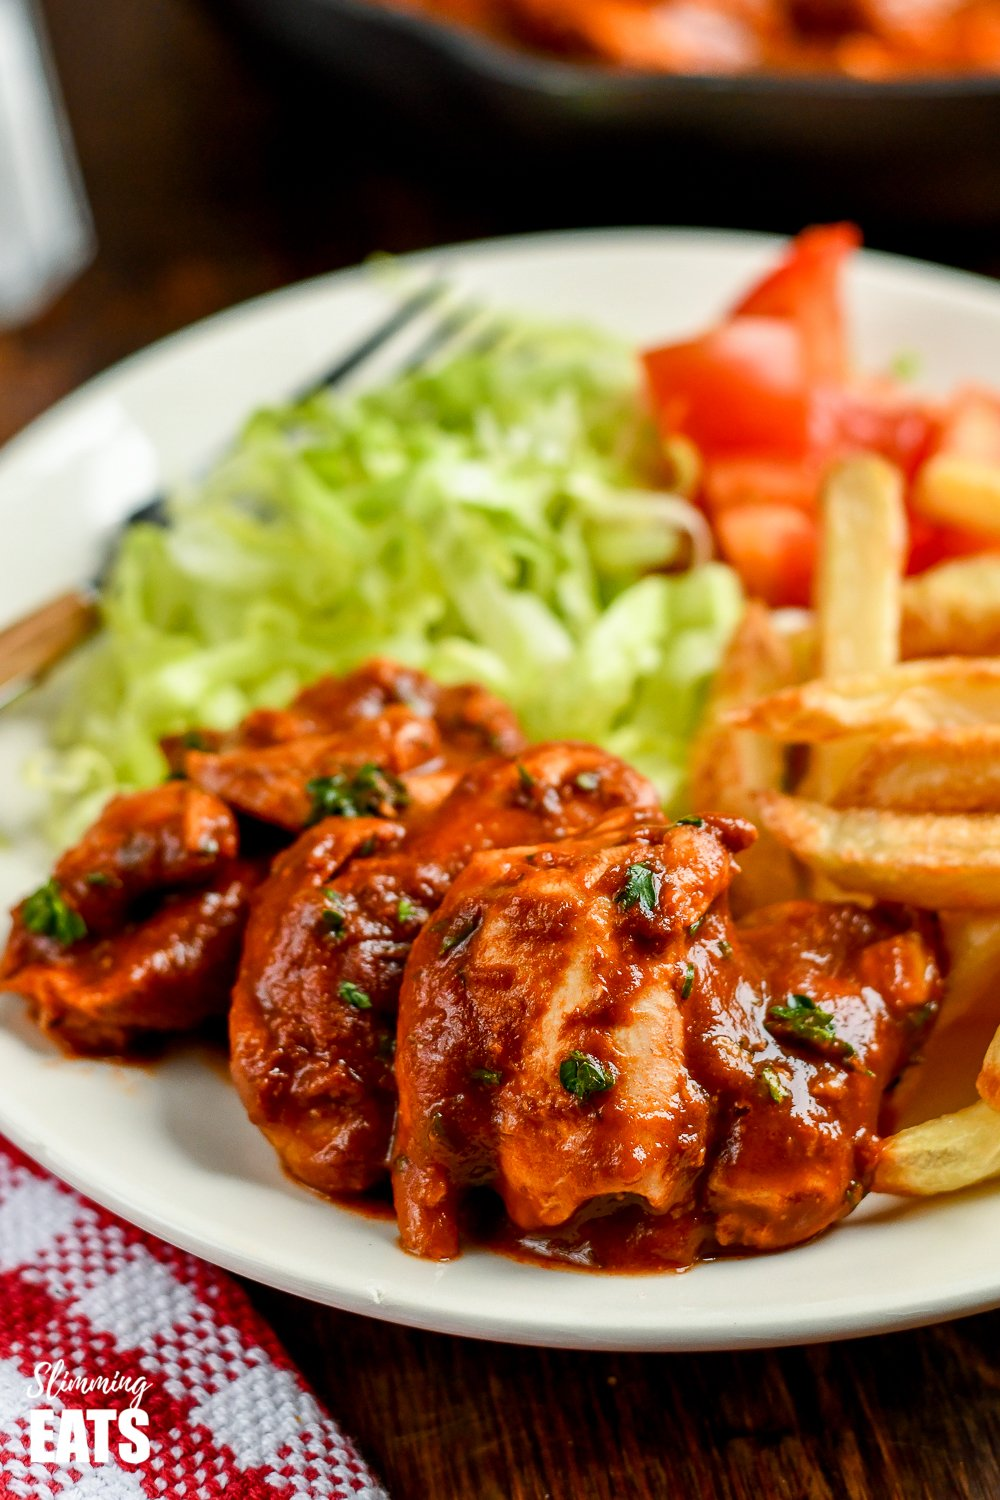 Diet Coke chicken on white plate with salad and chips